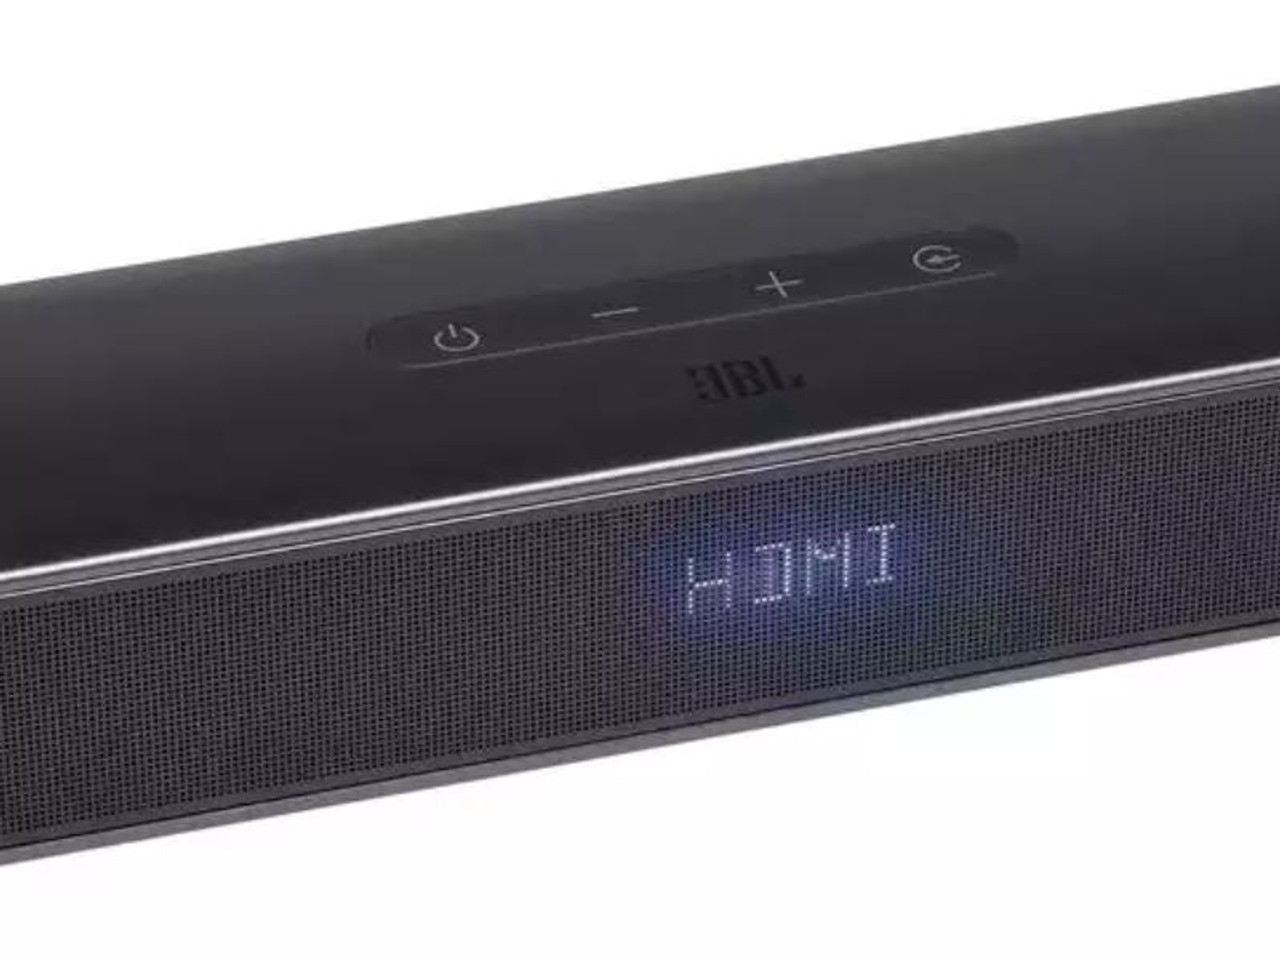 JBL JBL2GBAR21DBBKAM-Z Bar 2.1 Soundbar with Deep Base wireless subwoofer -Cert Refurbished